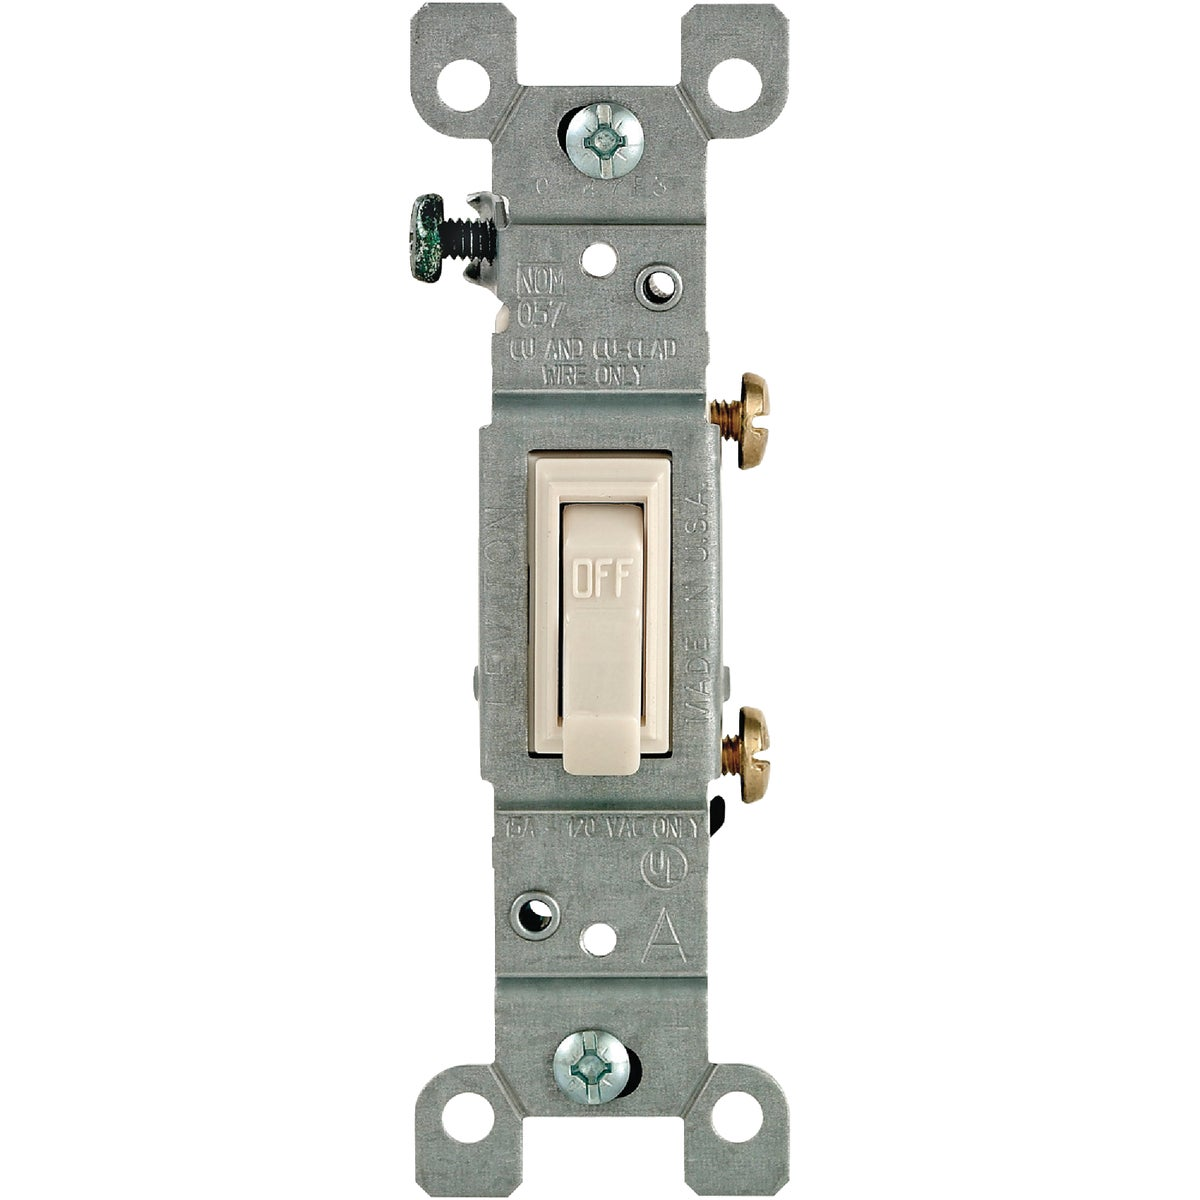 LT ALM 10PK 1TGL SWITCH - M26-01451-2TM by Leviton Mfg Co